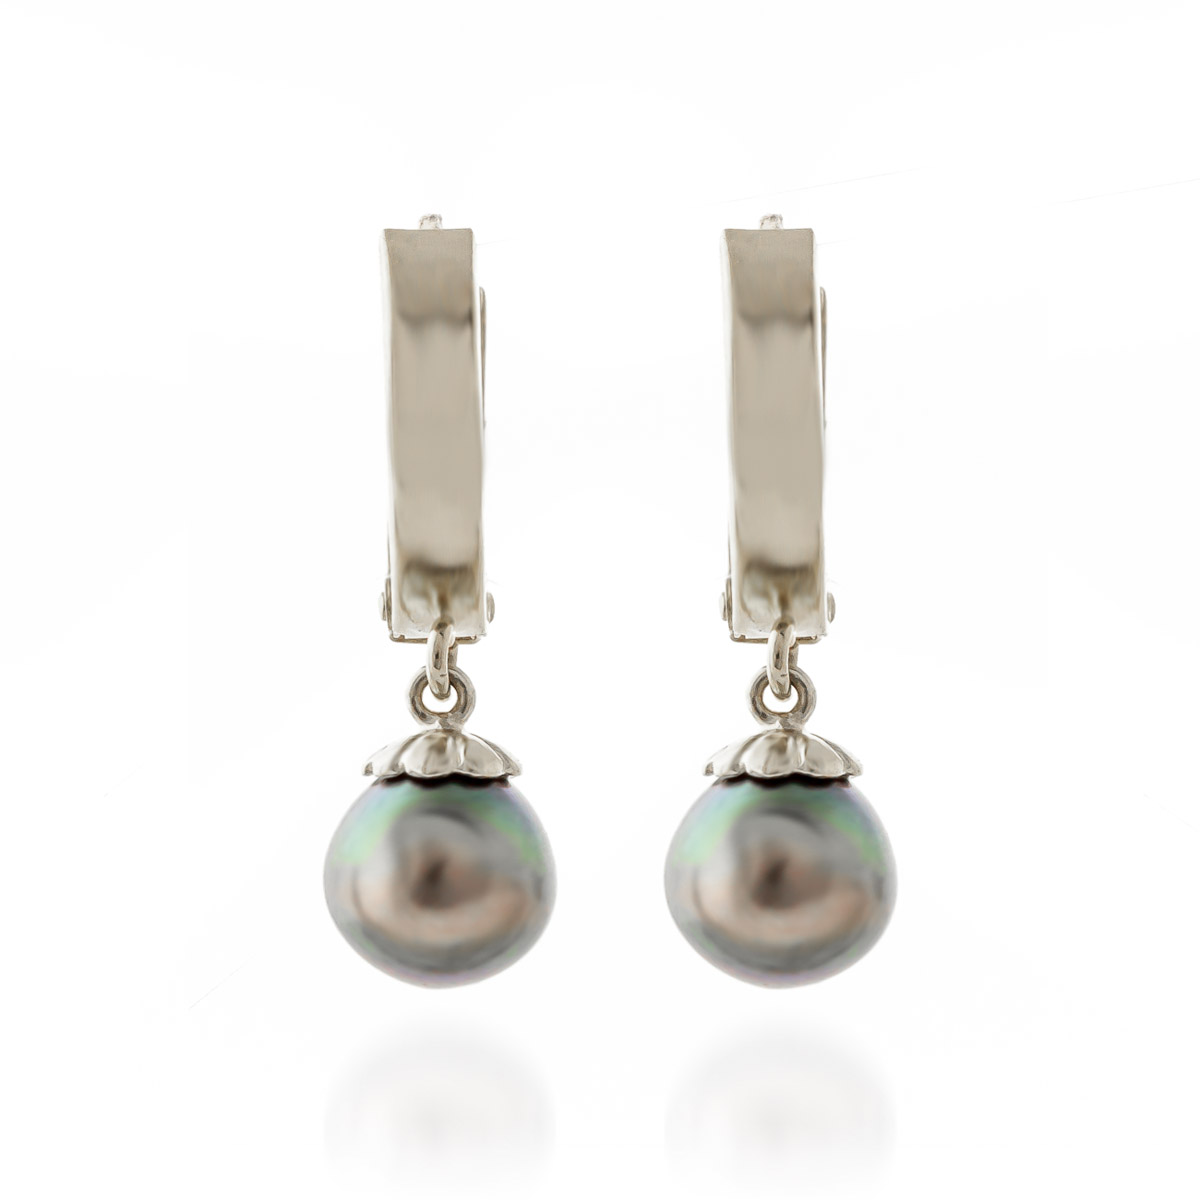 Black Pearl Drop Earrings 4.0ctw in 9ct White Gold